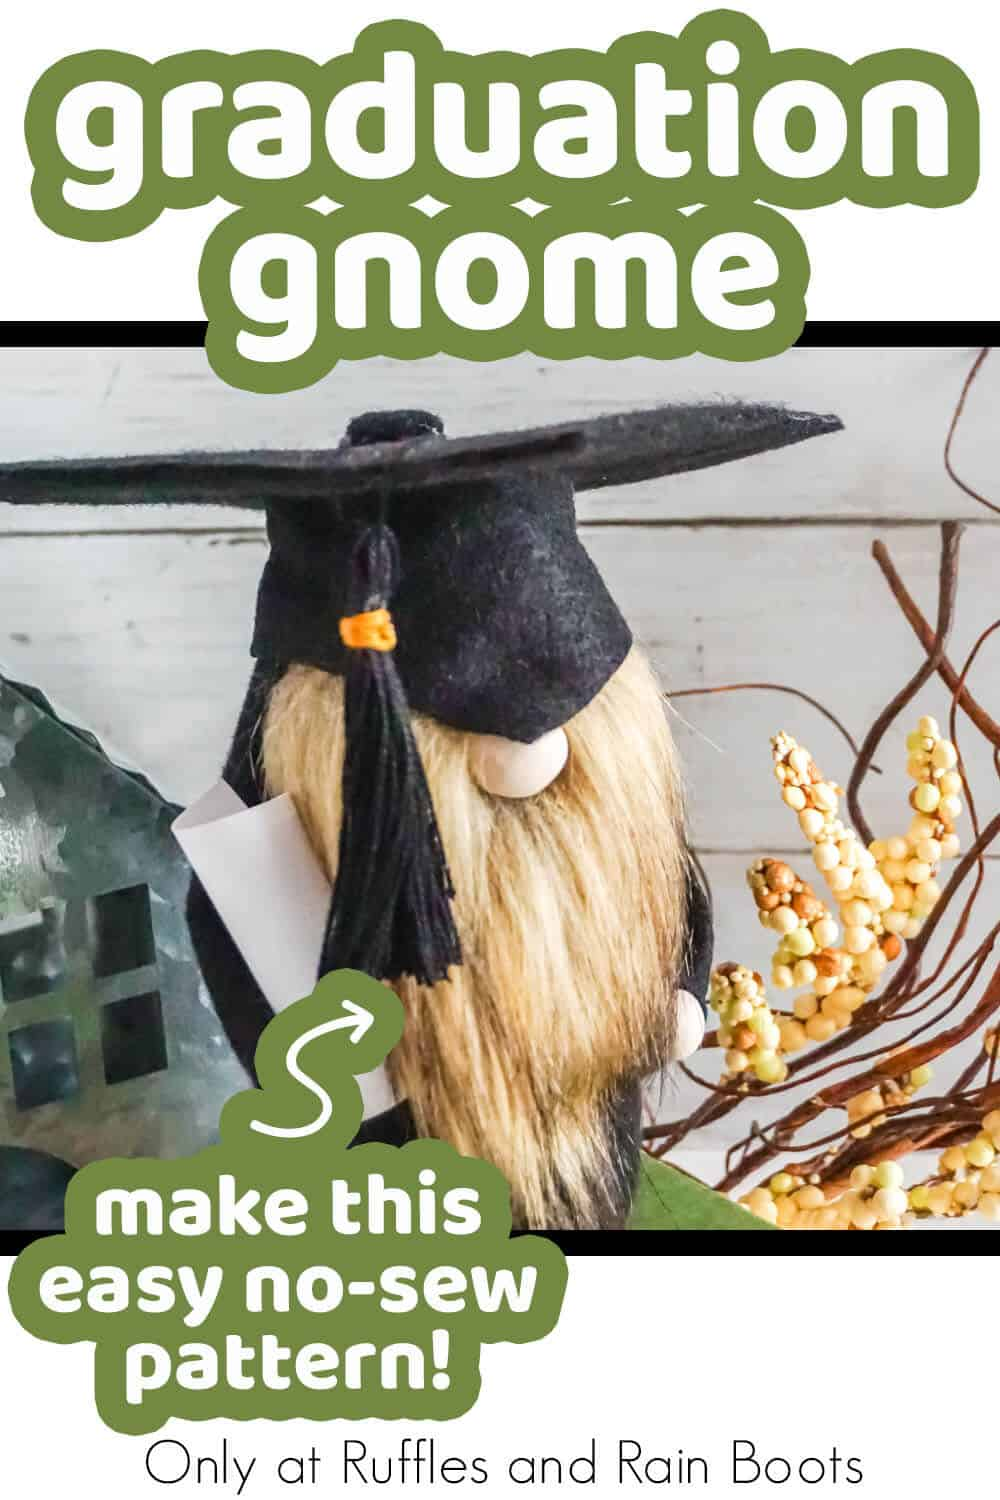 graduation cap and gown gnome pattern with text which reads graduation gnome make this easy no-sew pattern!